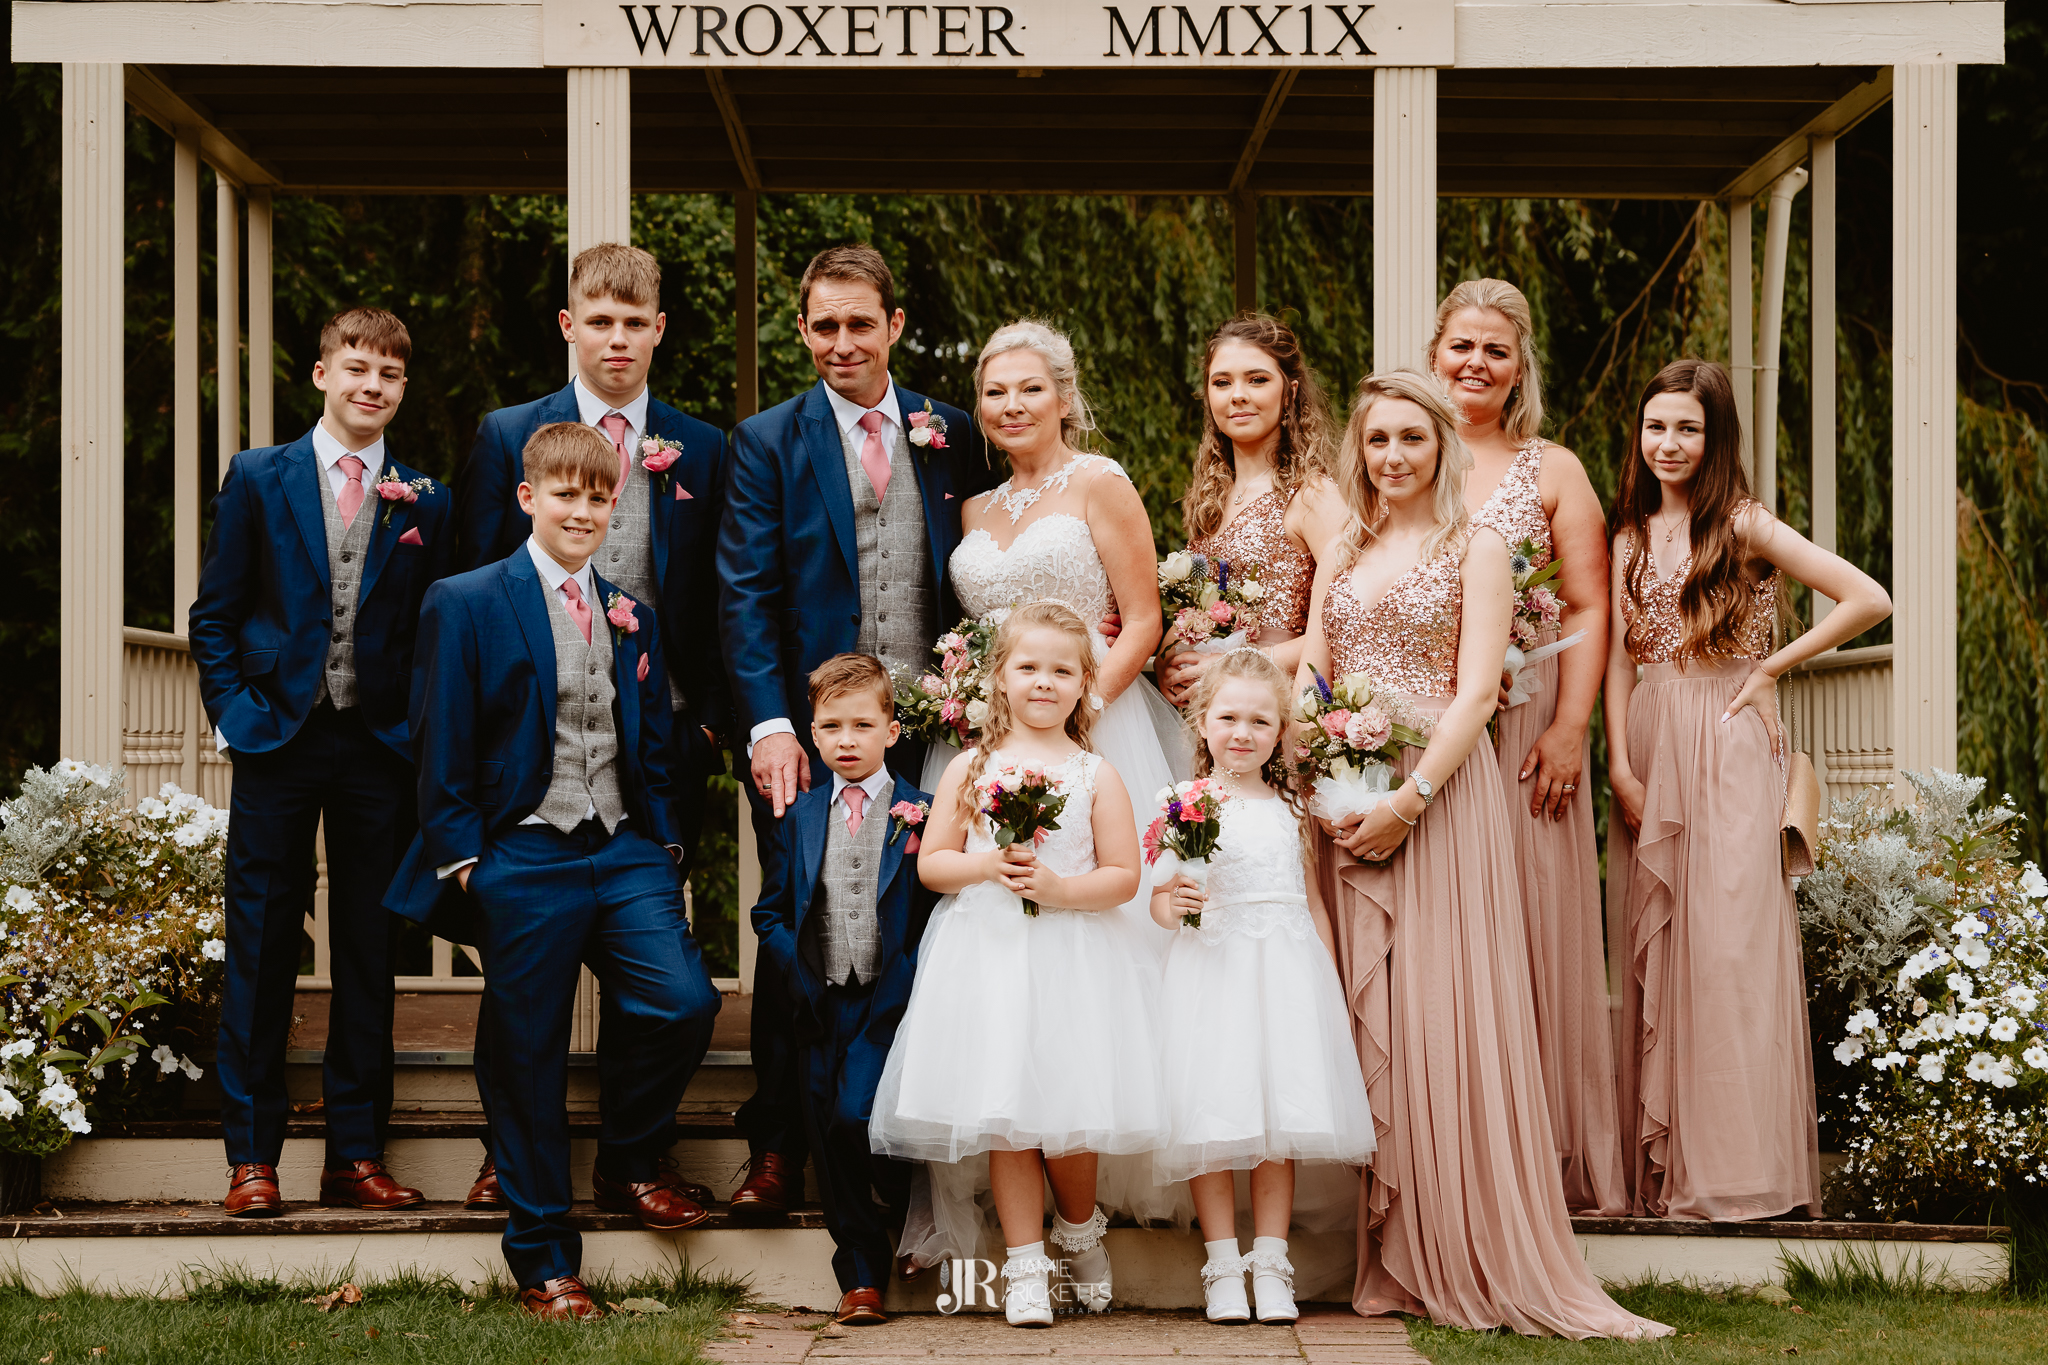 Wroxeter-Hotel-Wedding-Photography-In-Shropshire-By-Shropshire-Wedding-Photographer-Jamie-Ricketts-099.JPG